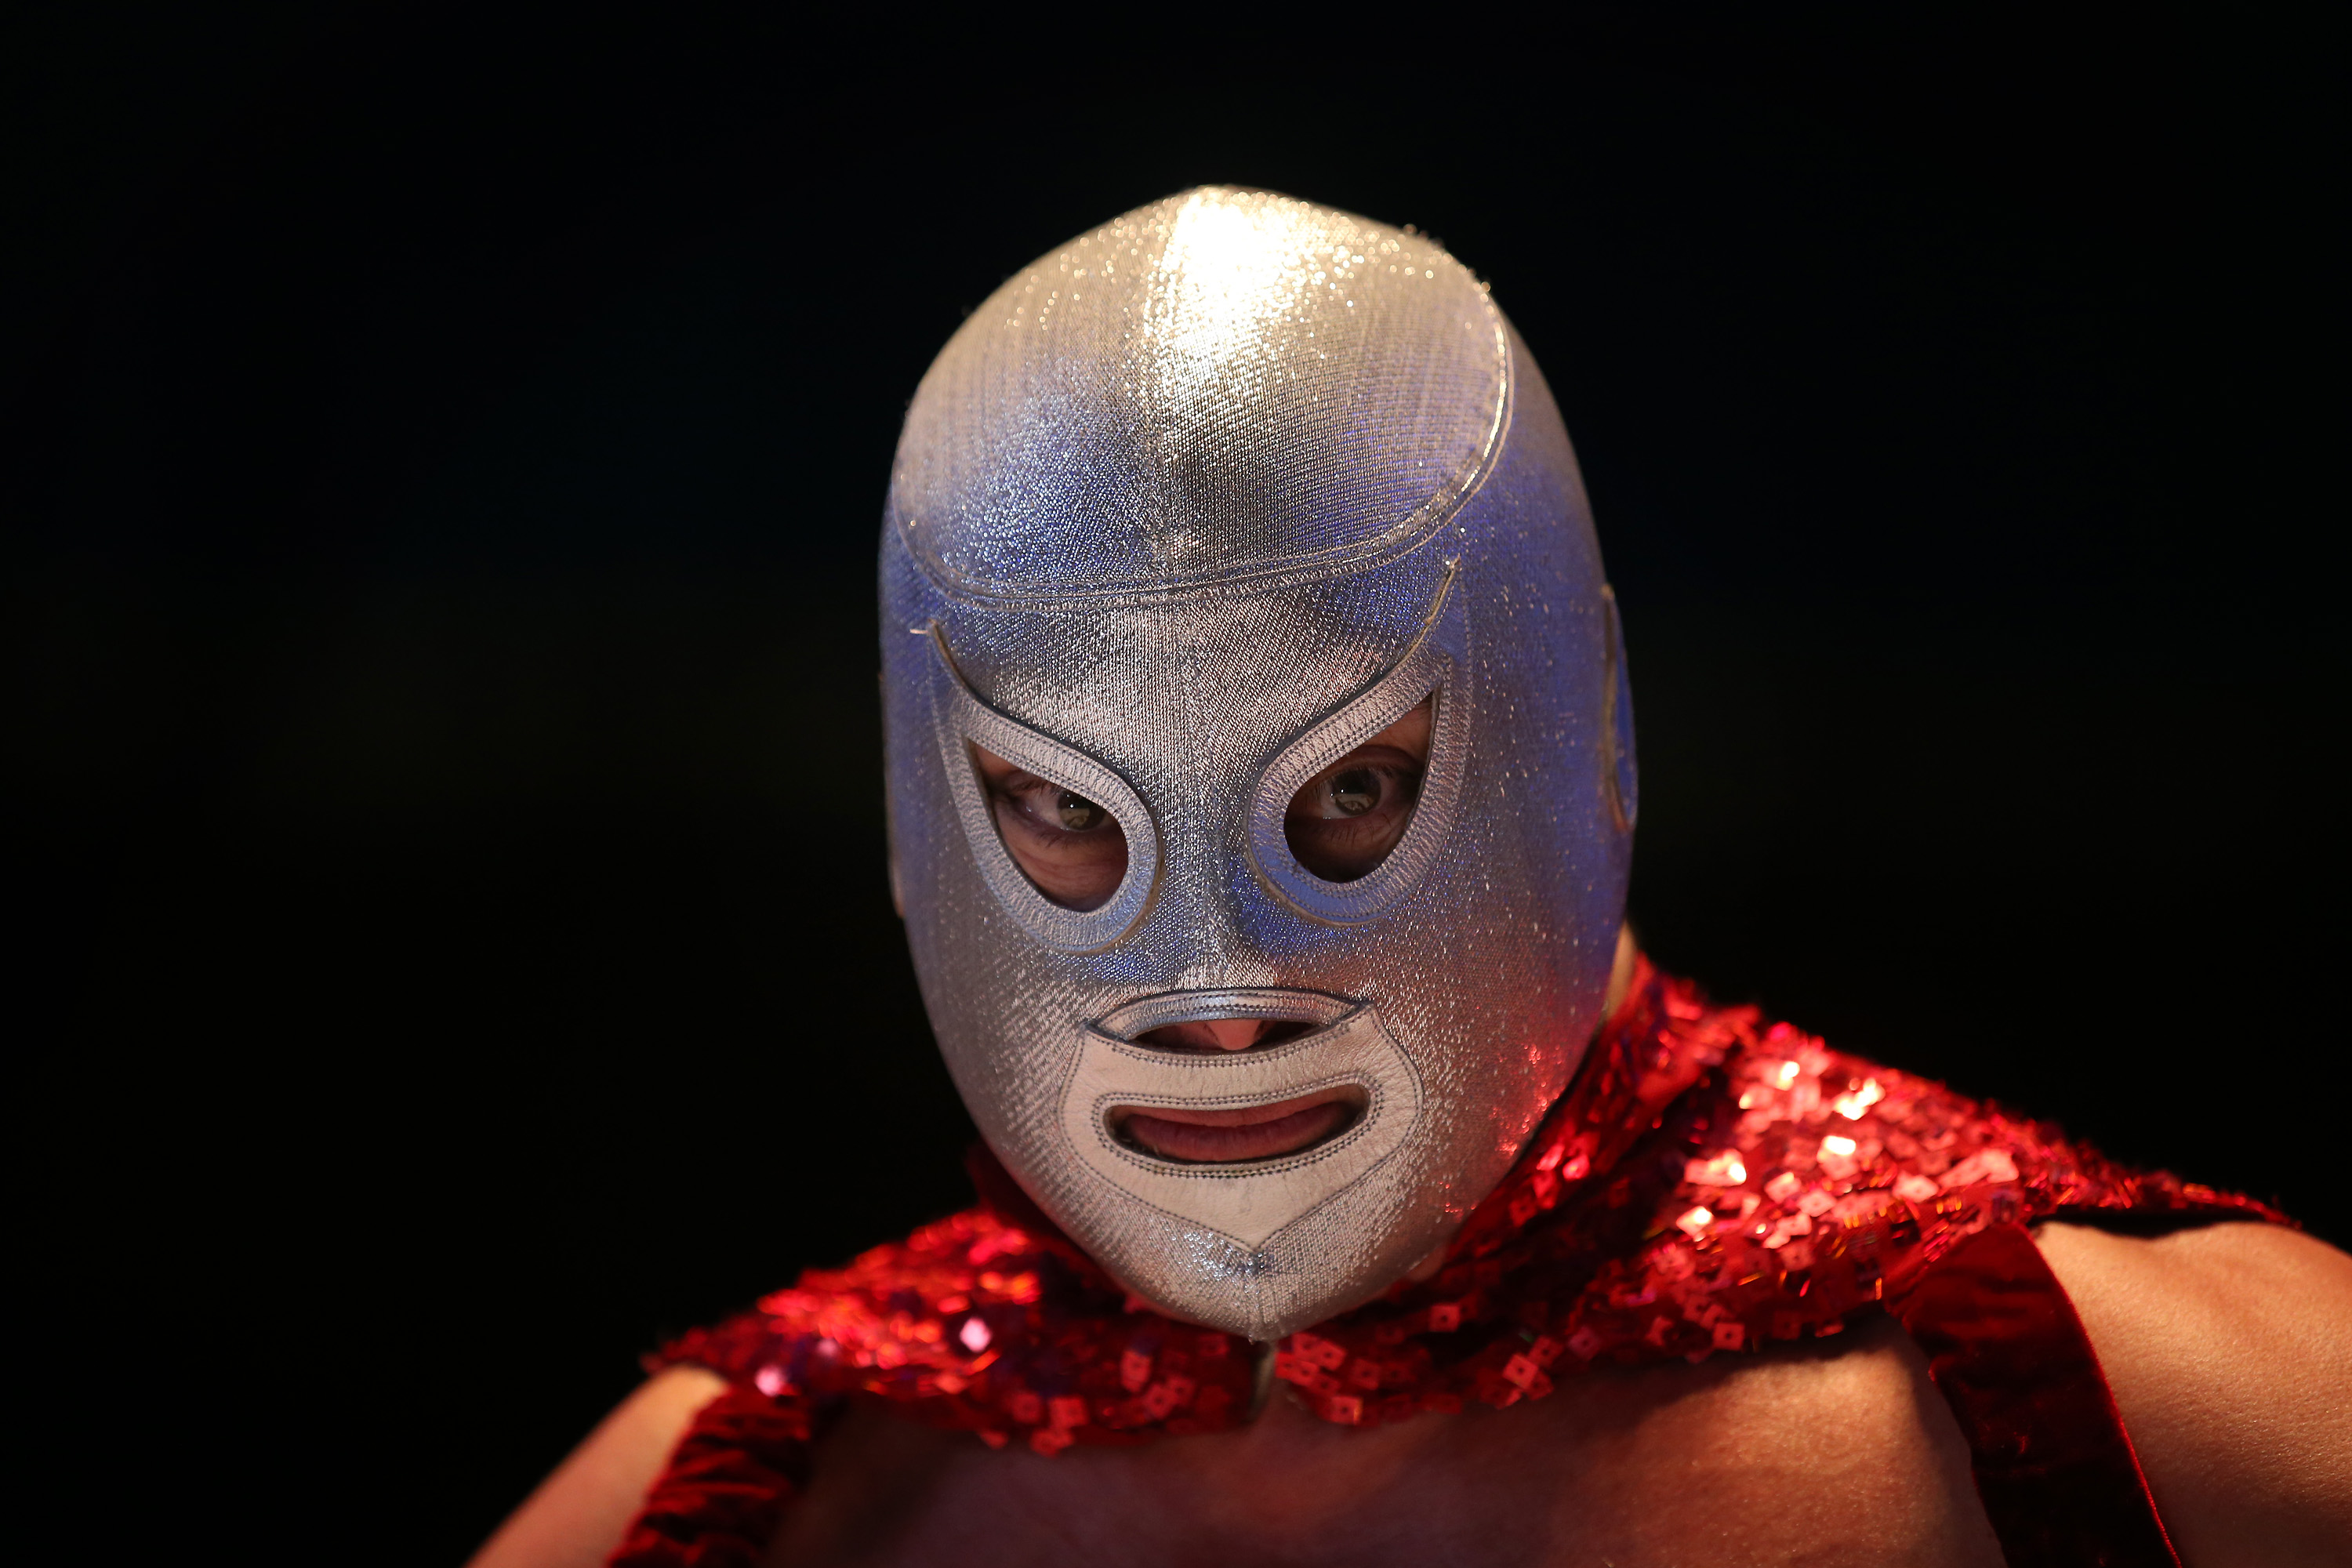 El Hijo del Santo, who followed in his father's footsteps and became a wrestler. (Getty)